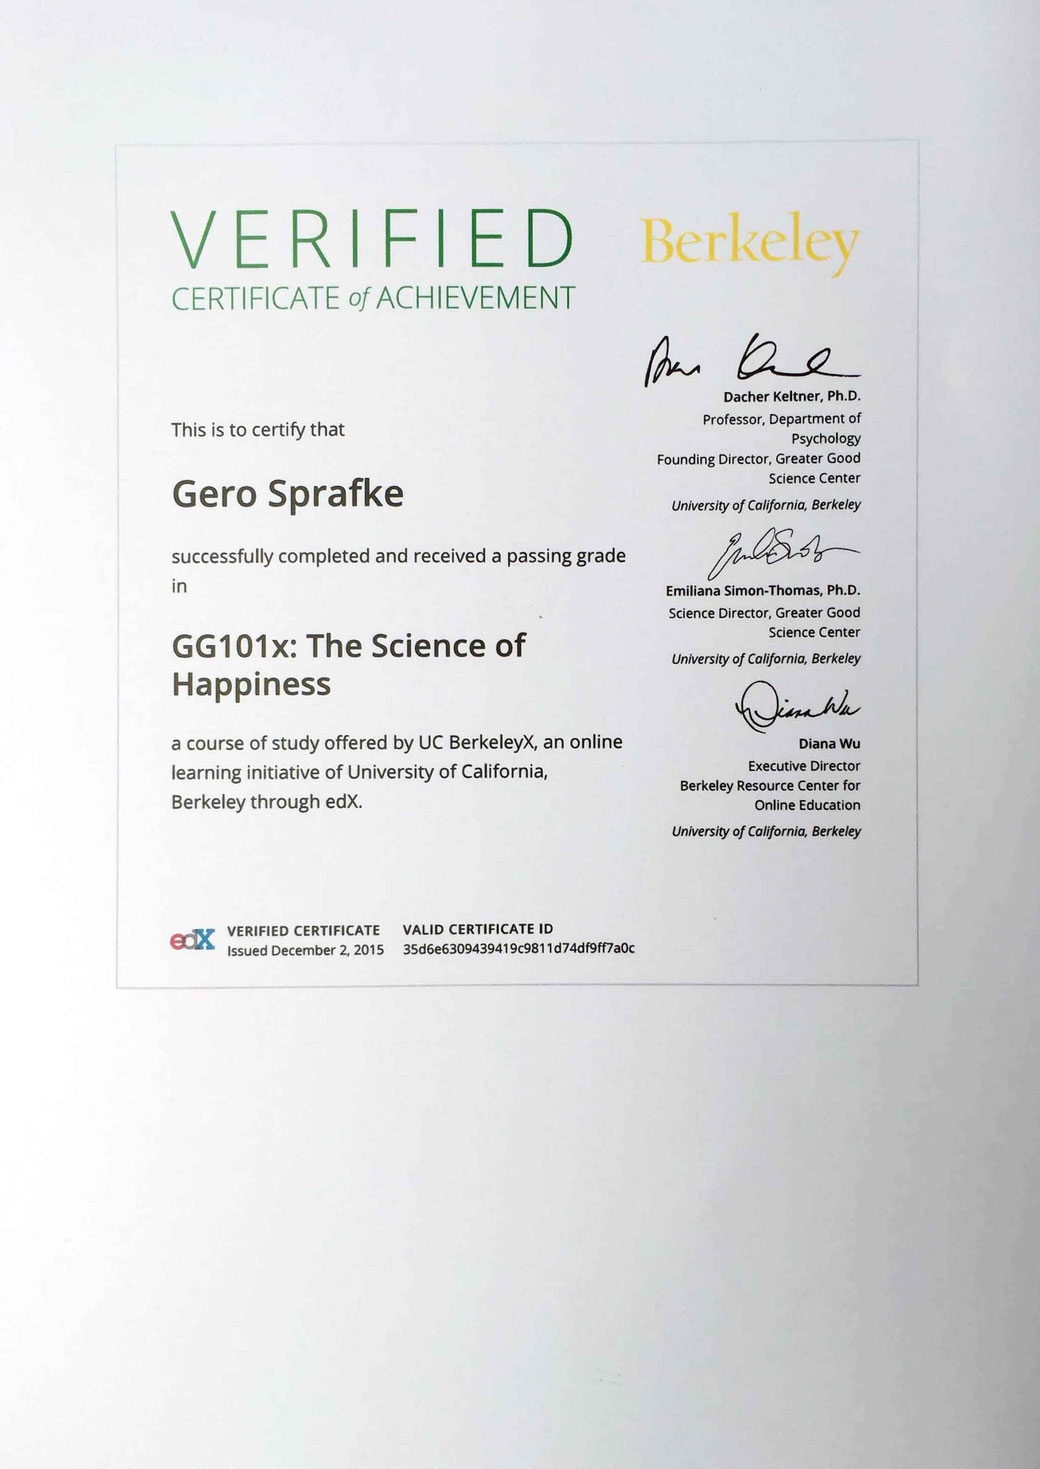 Science of Happiness - Verified Certificate of Achievement